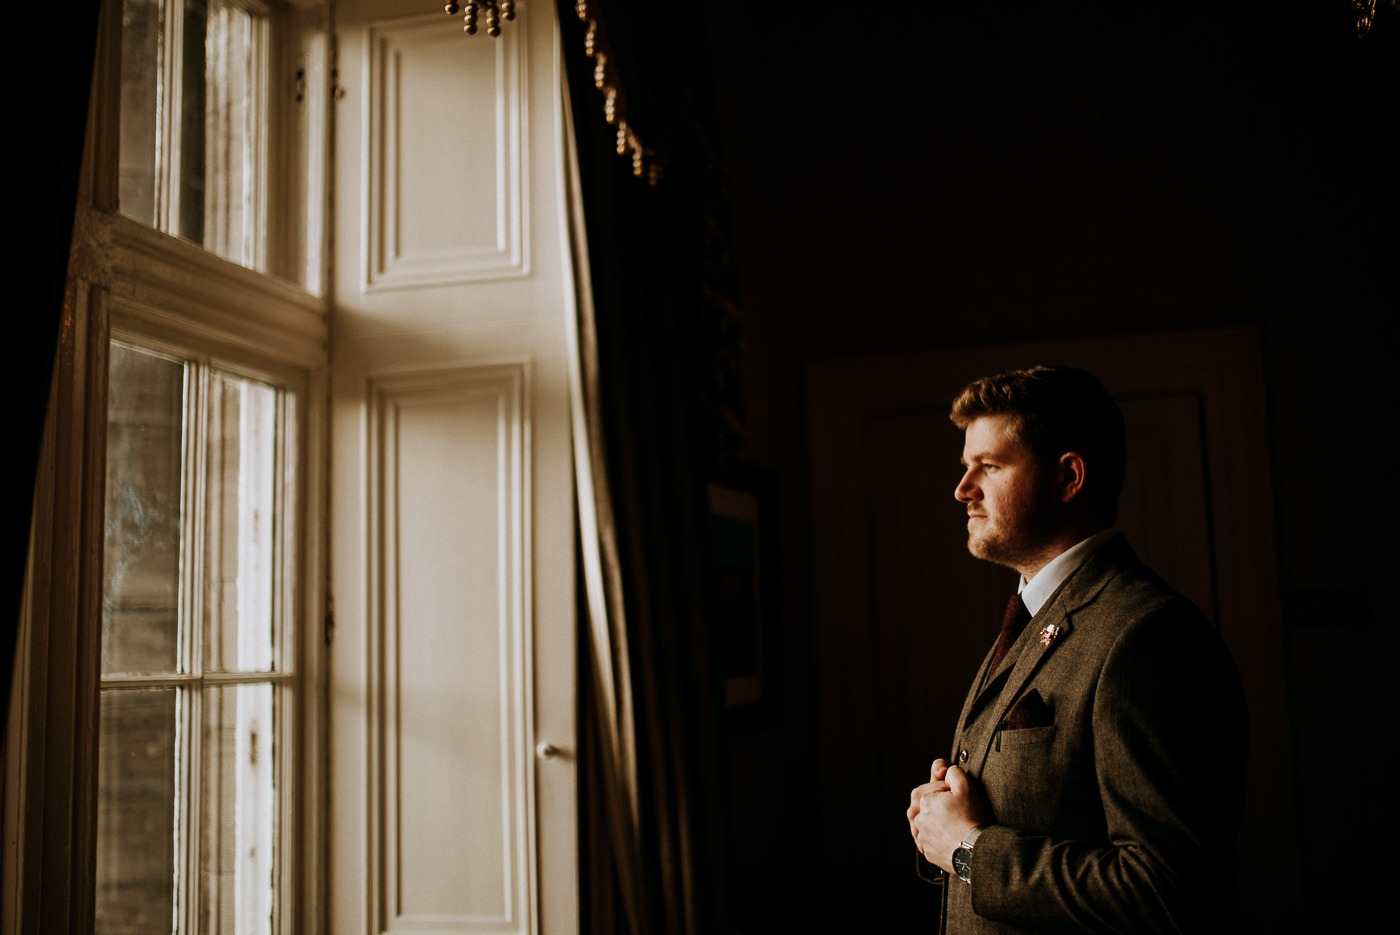 A man standing in front of a window